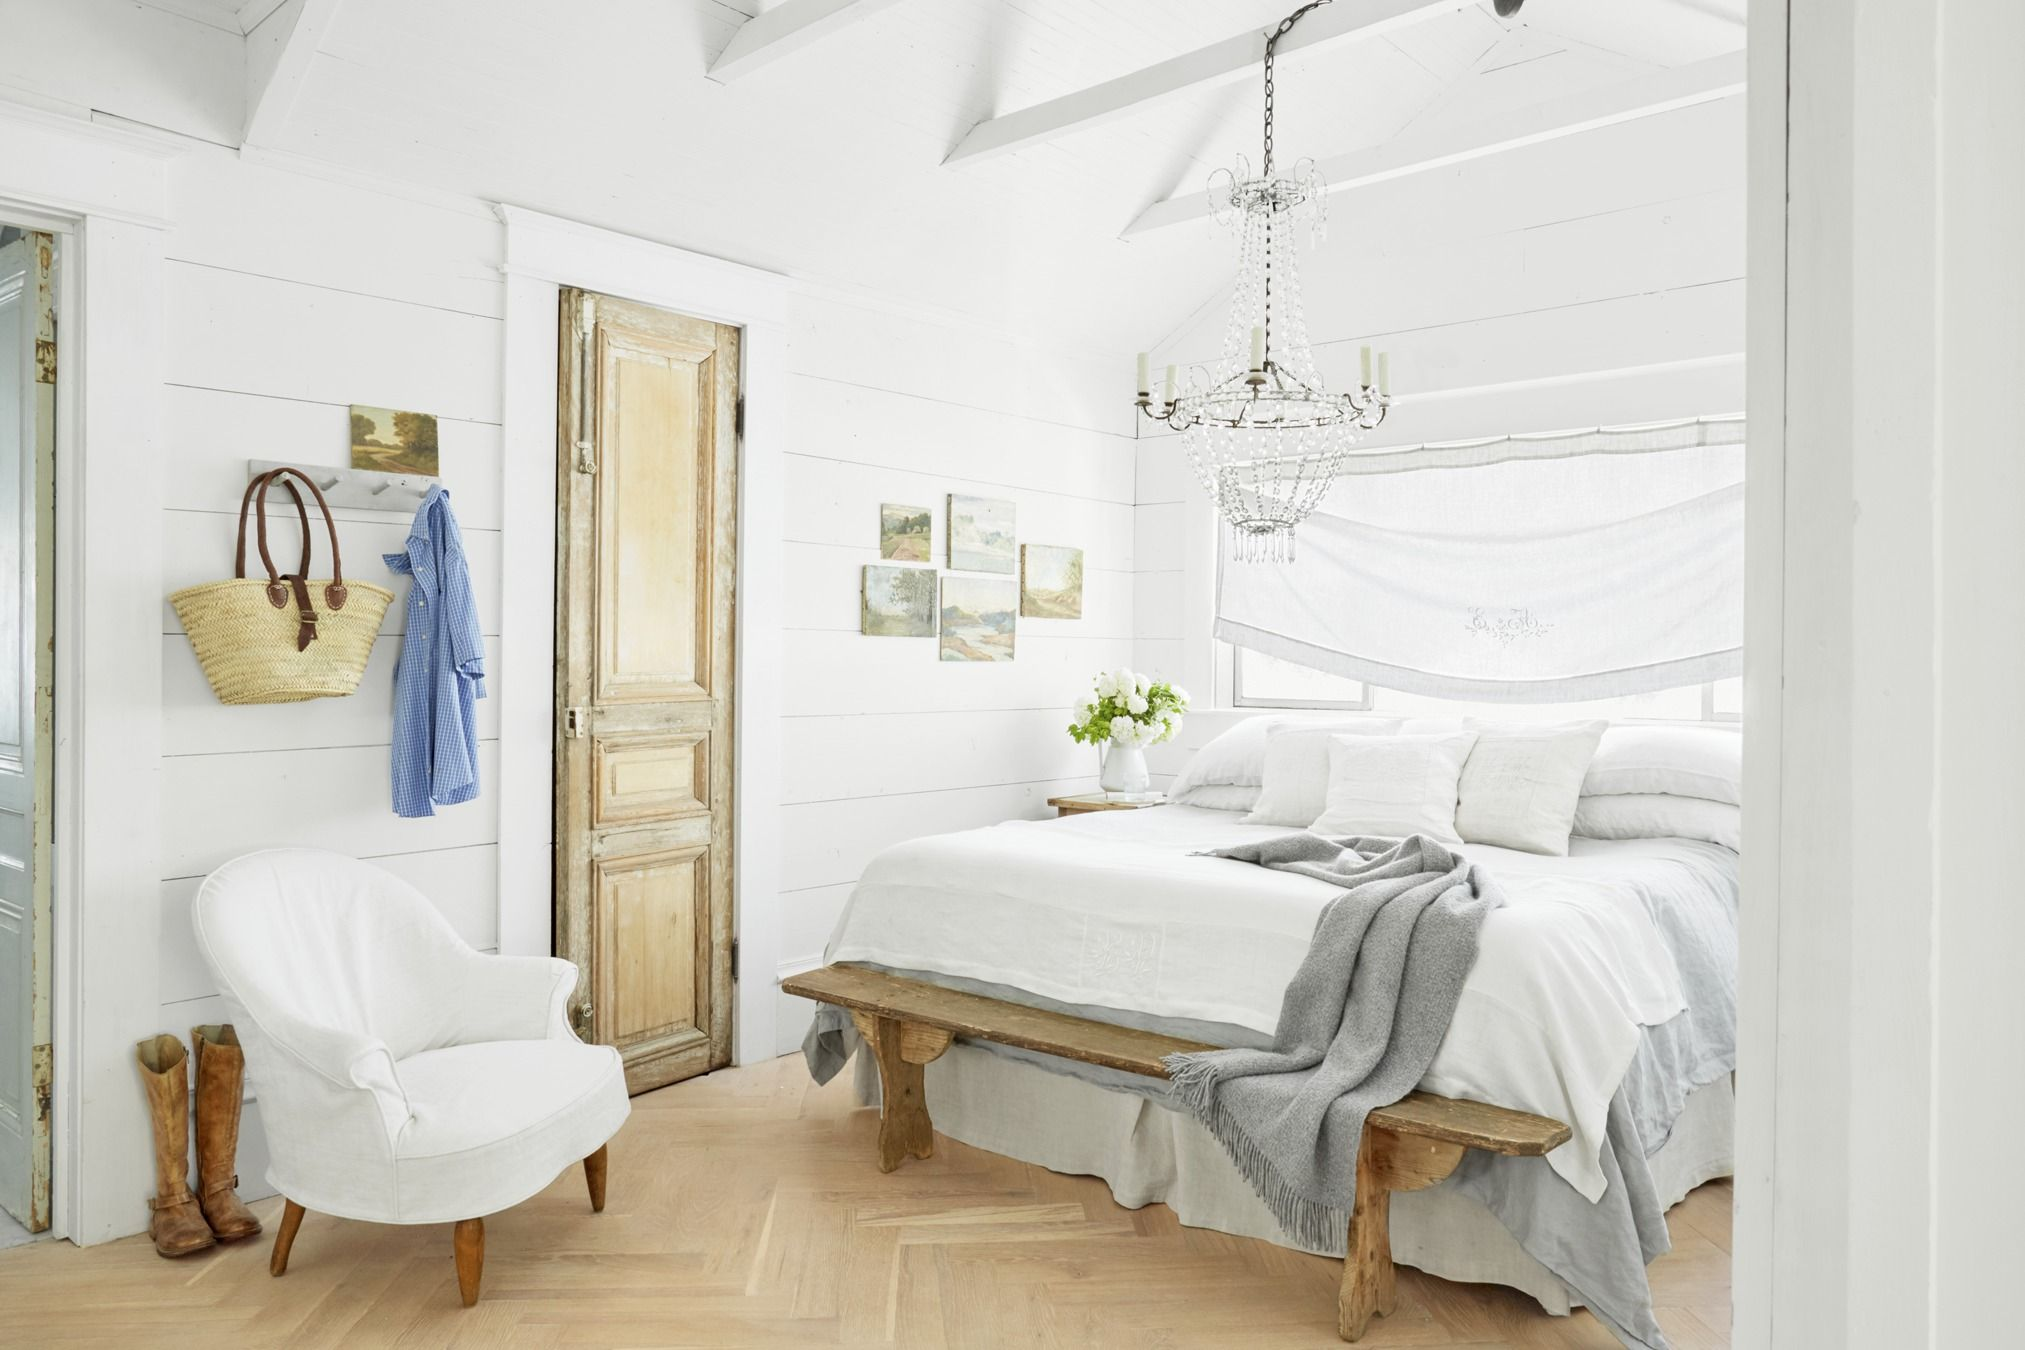 An inspiration for you from Bedroom Interior Pics